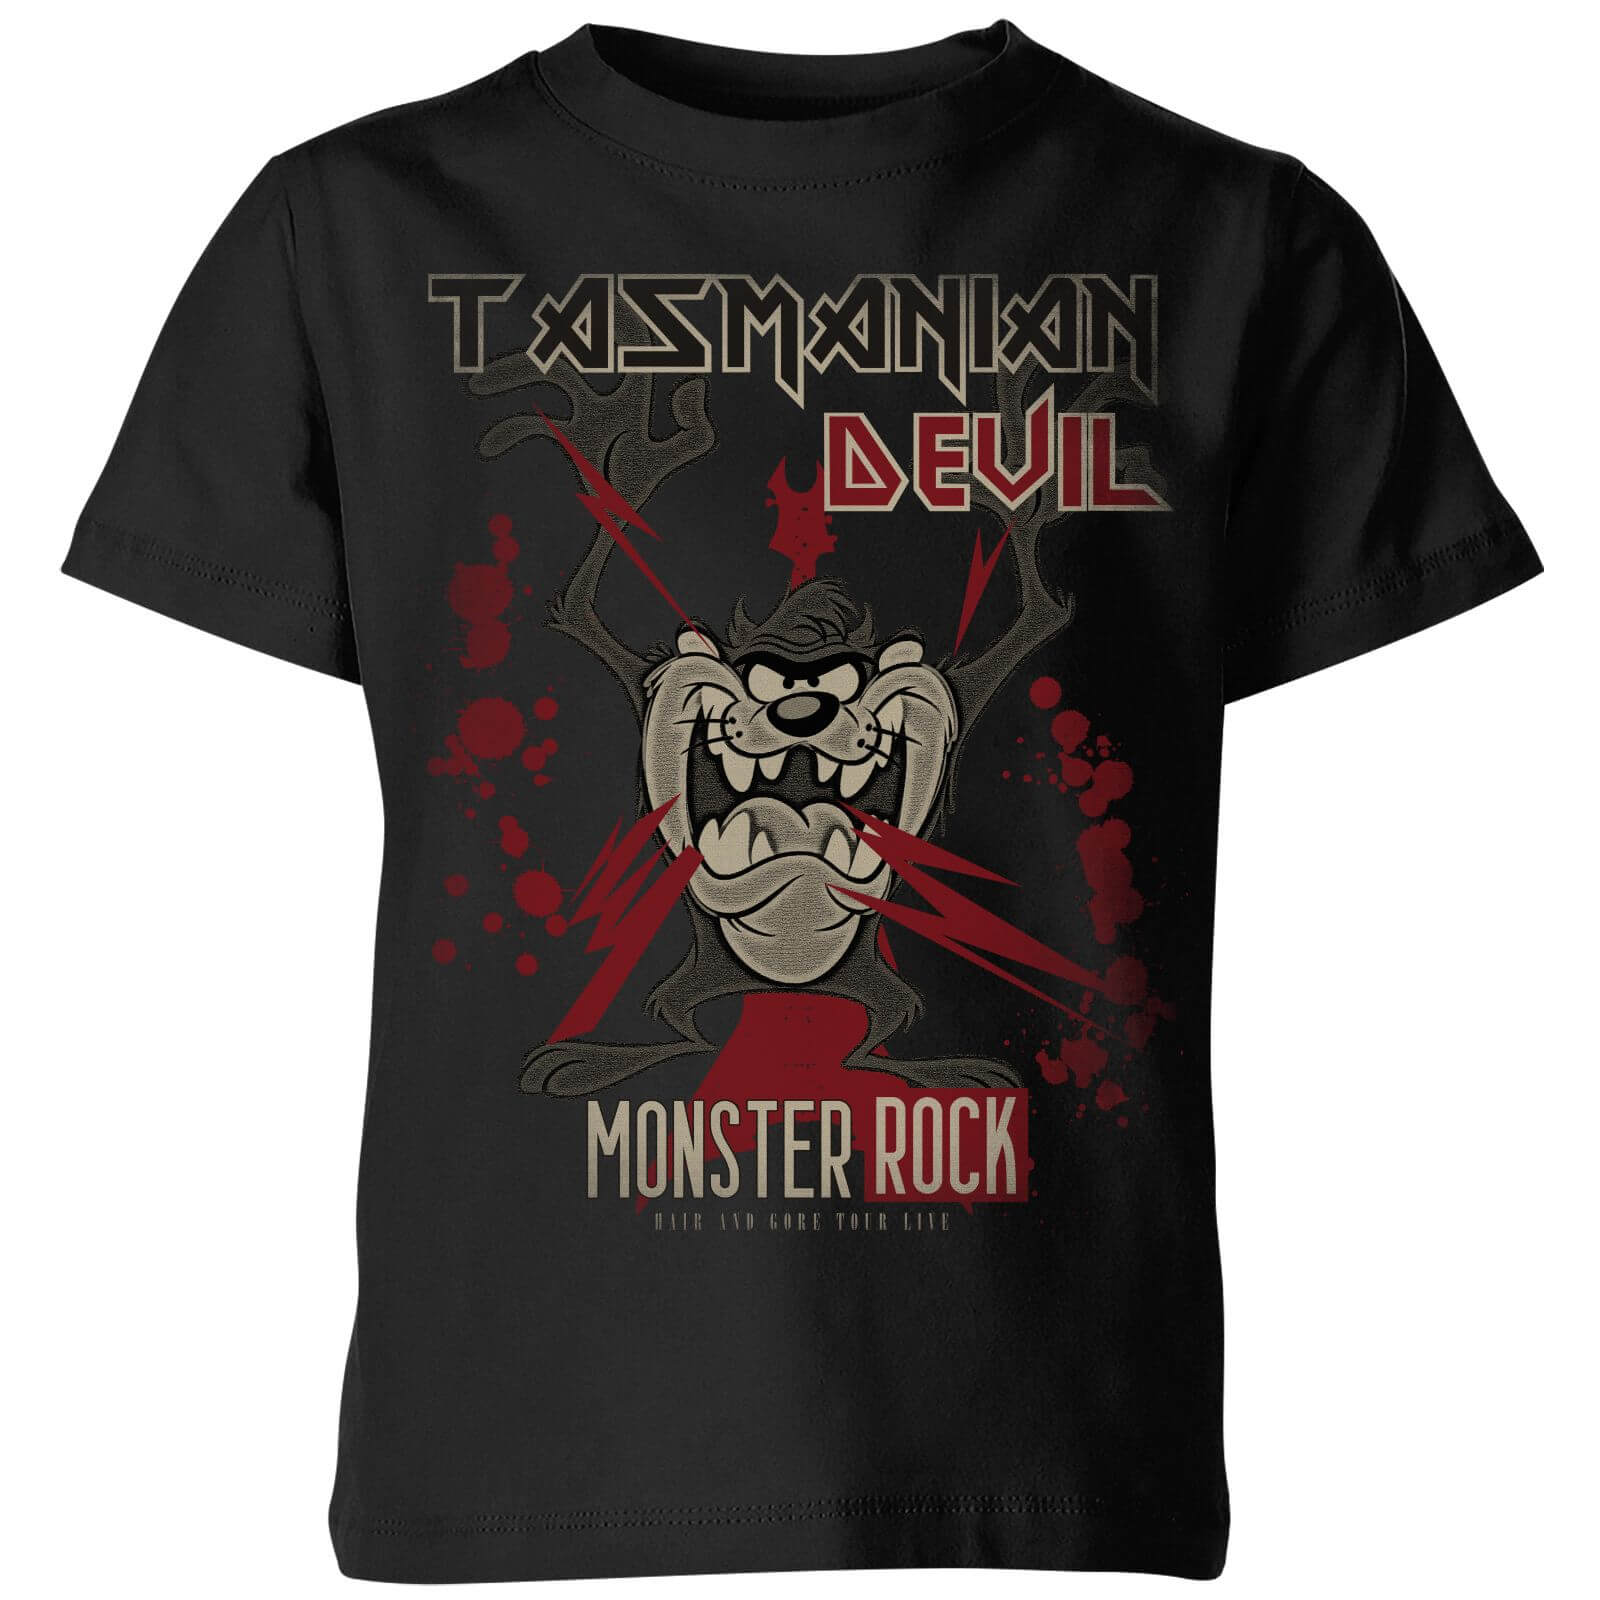 Looney Tunes Tasmanian Devil Monster Rock Kids